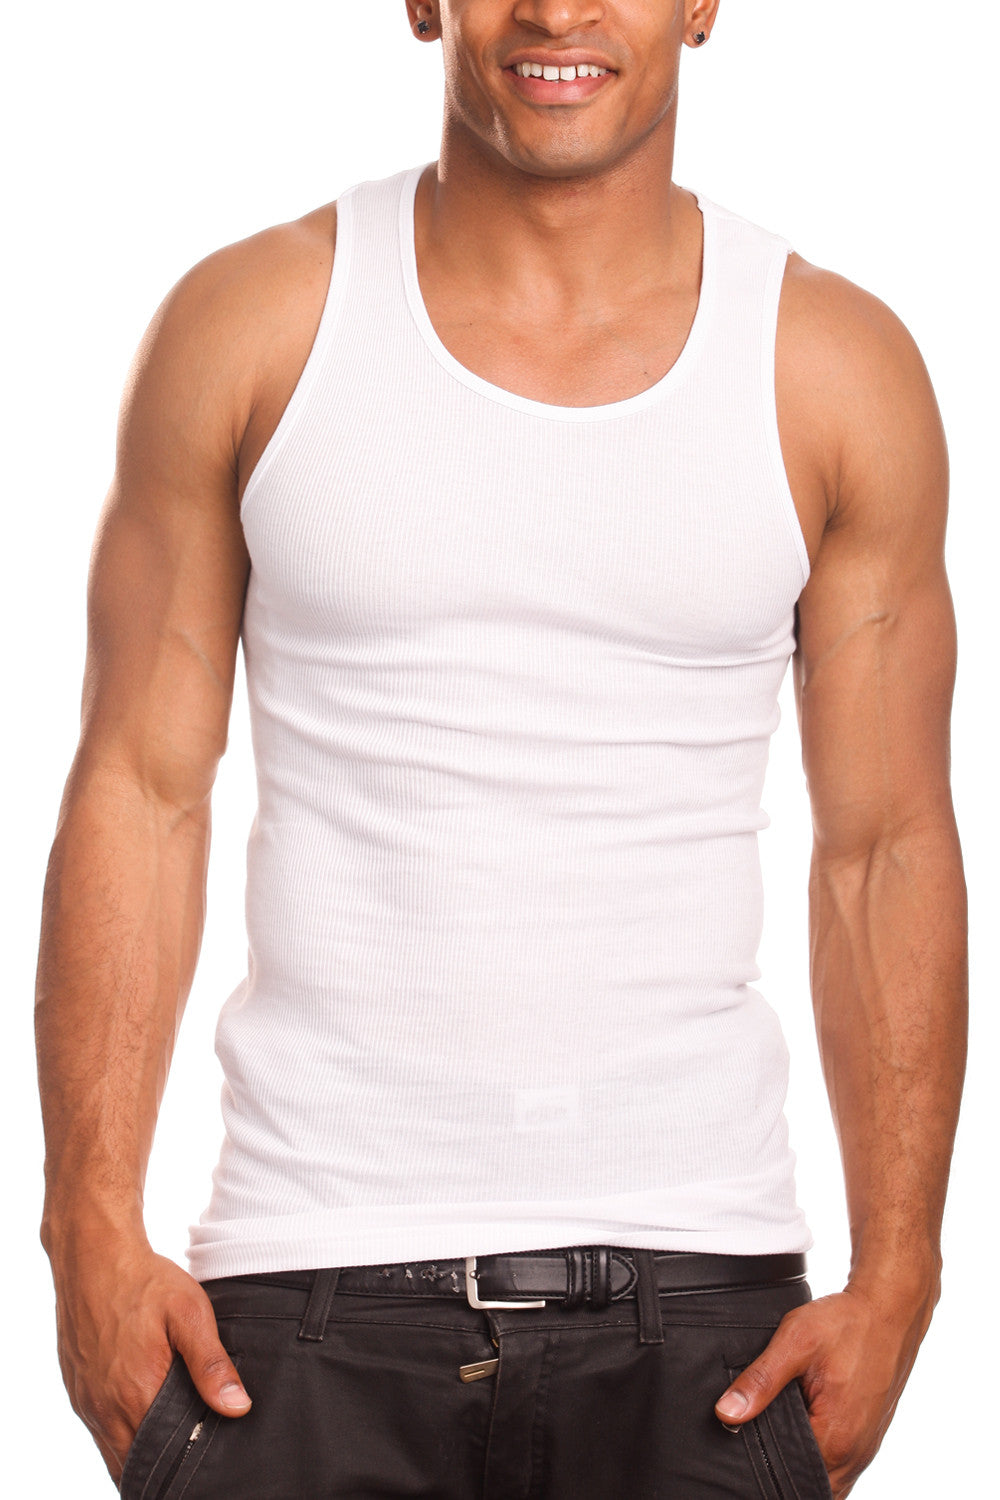 3 Mens Undershirt Ribbed Tank Top Muscle Wife Beater Cotton Sleeveless 5XL /& 6XL